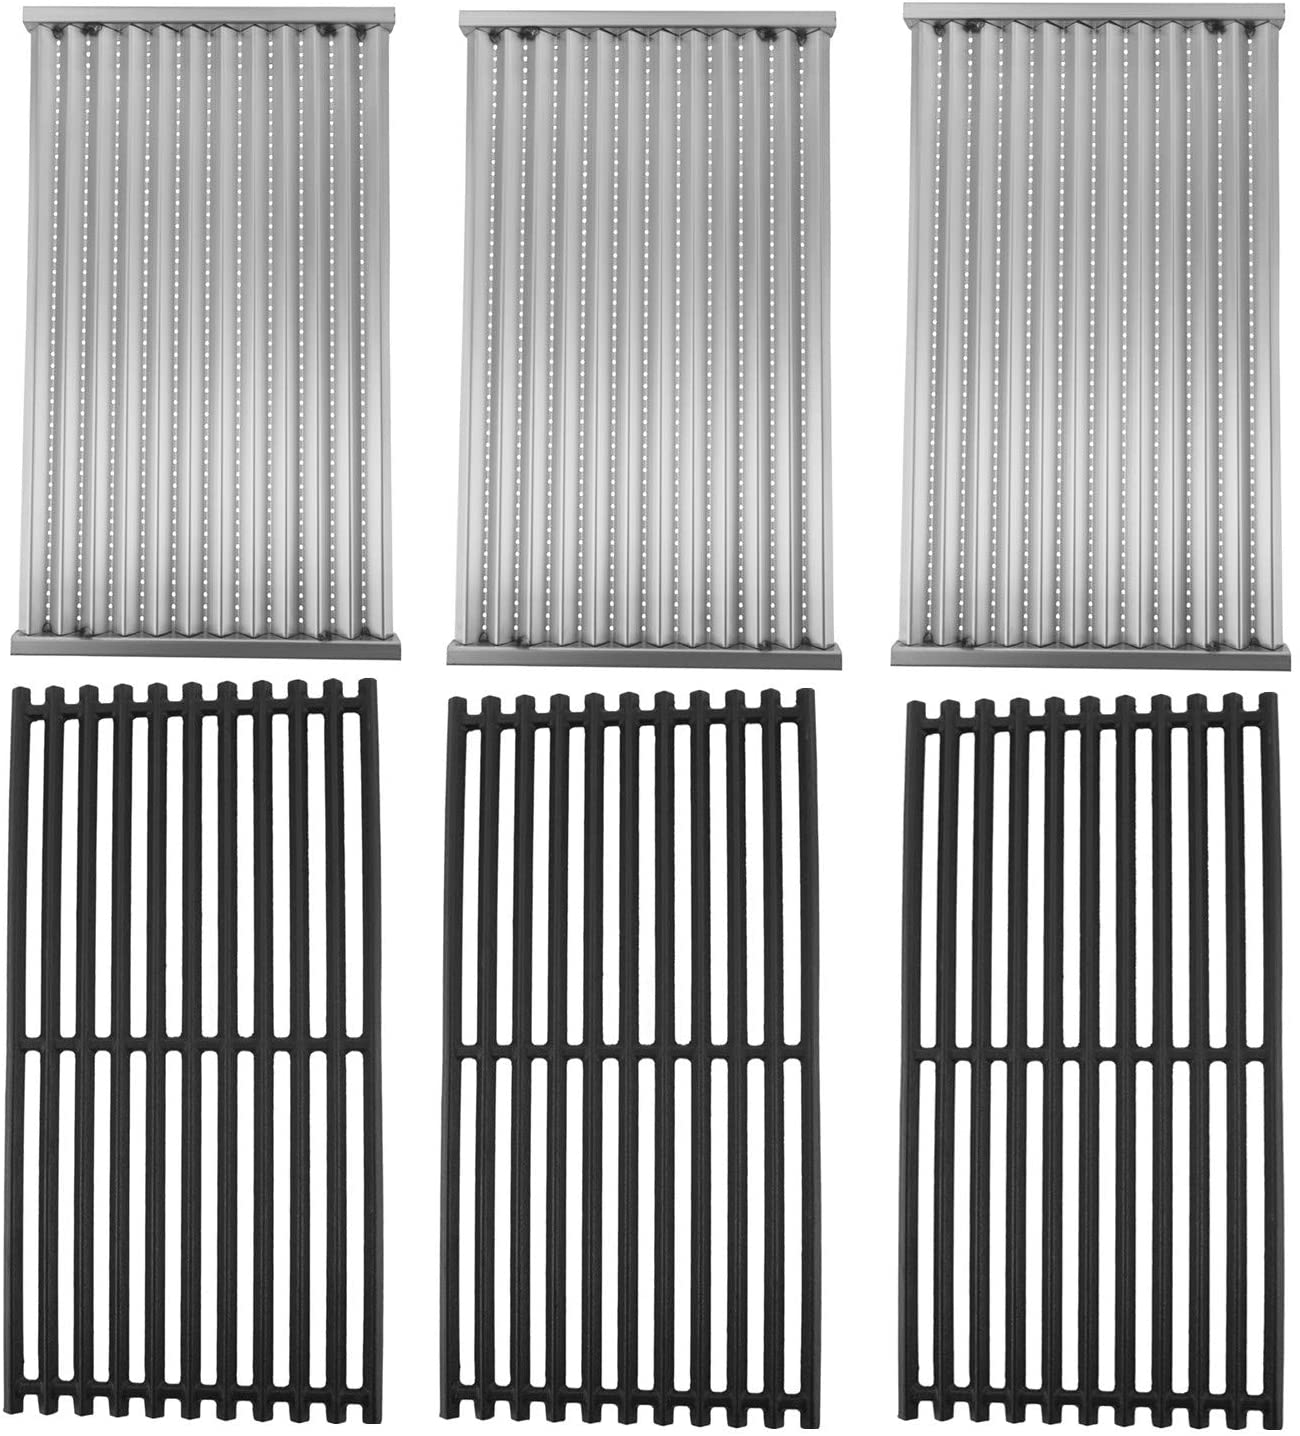 SafBbcue Cast Iron Max 55% OFF Cooking Grates Emitter New Orleans Mall and Replaceme Infrared